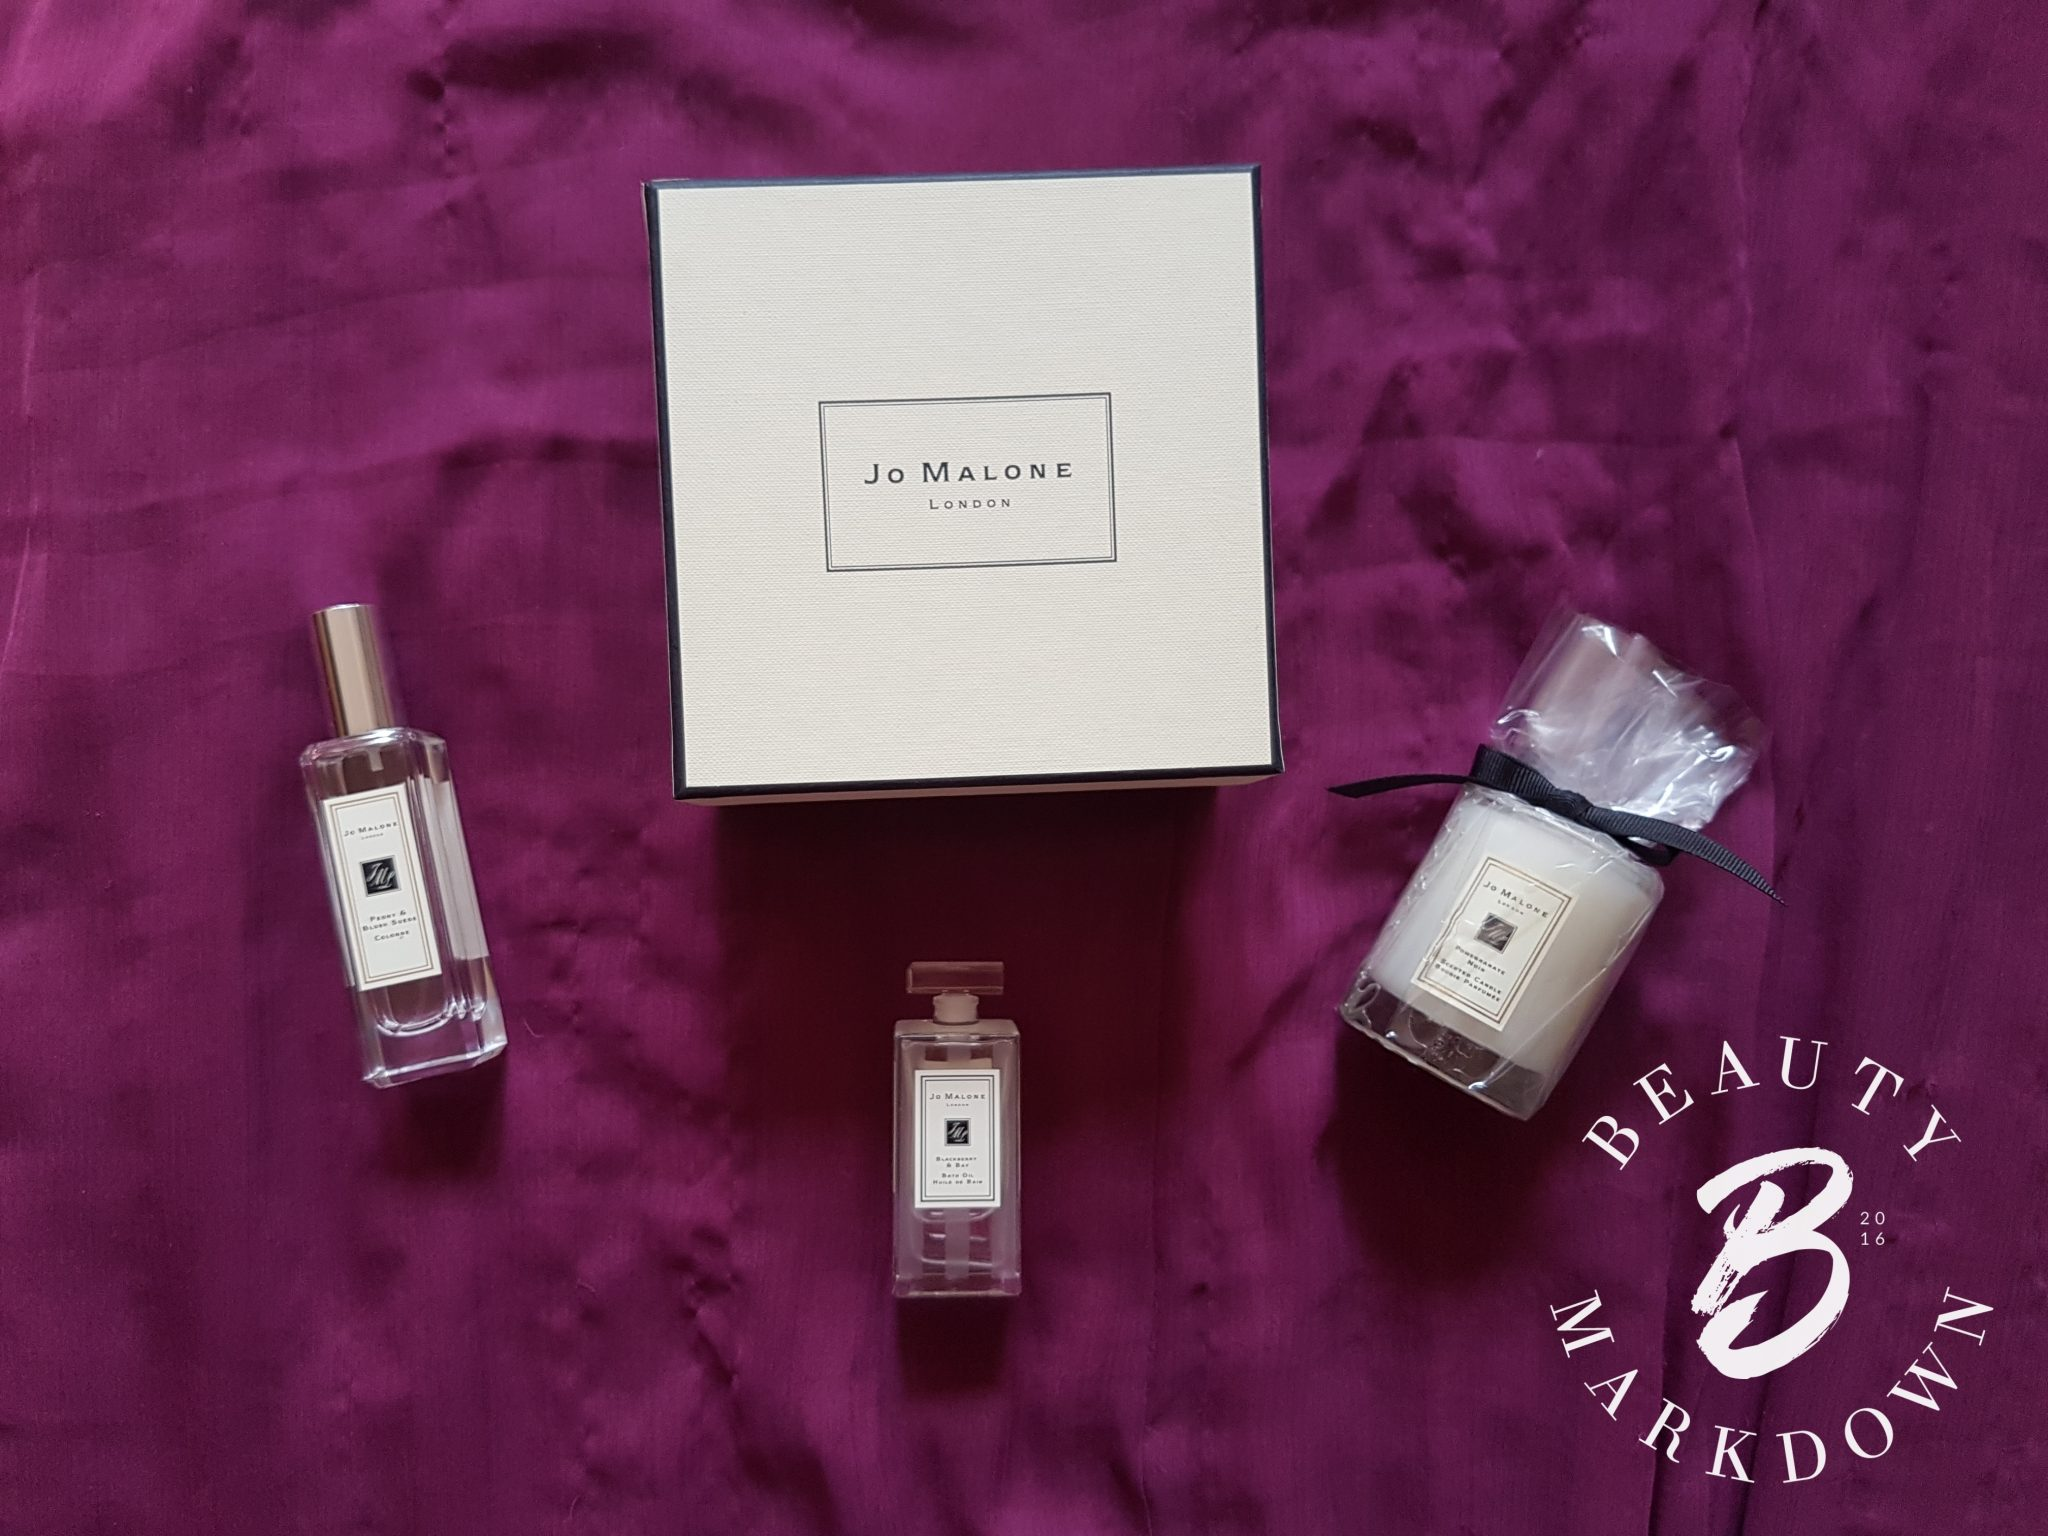 b1342601ab8 Jo Malone free gifts worth up to £94